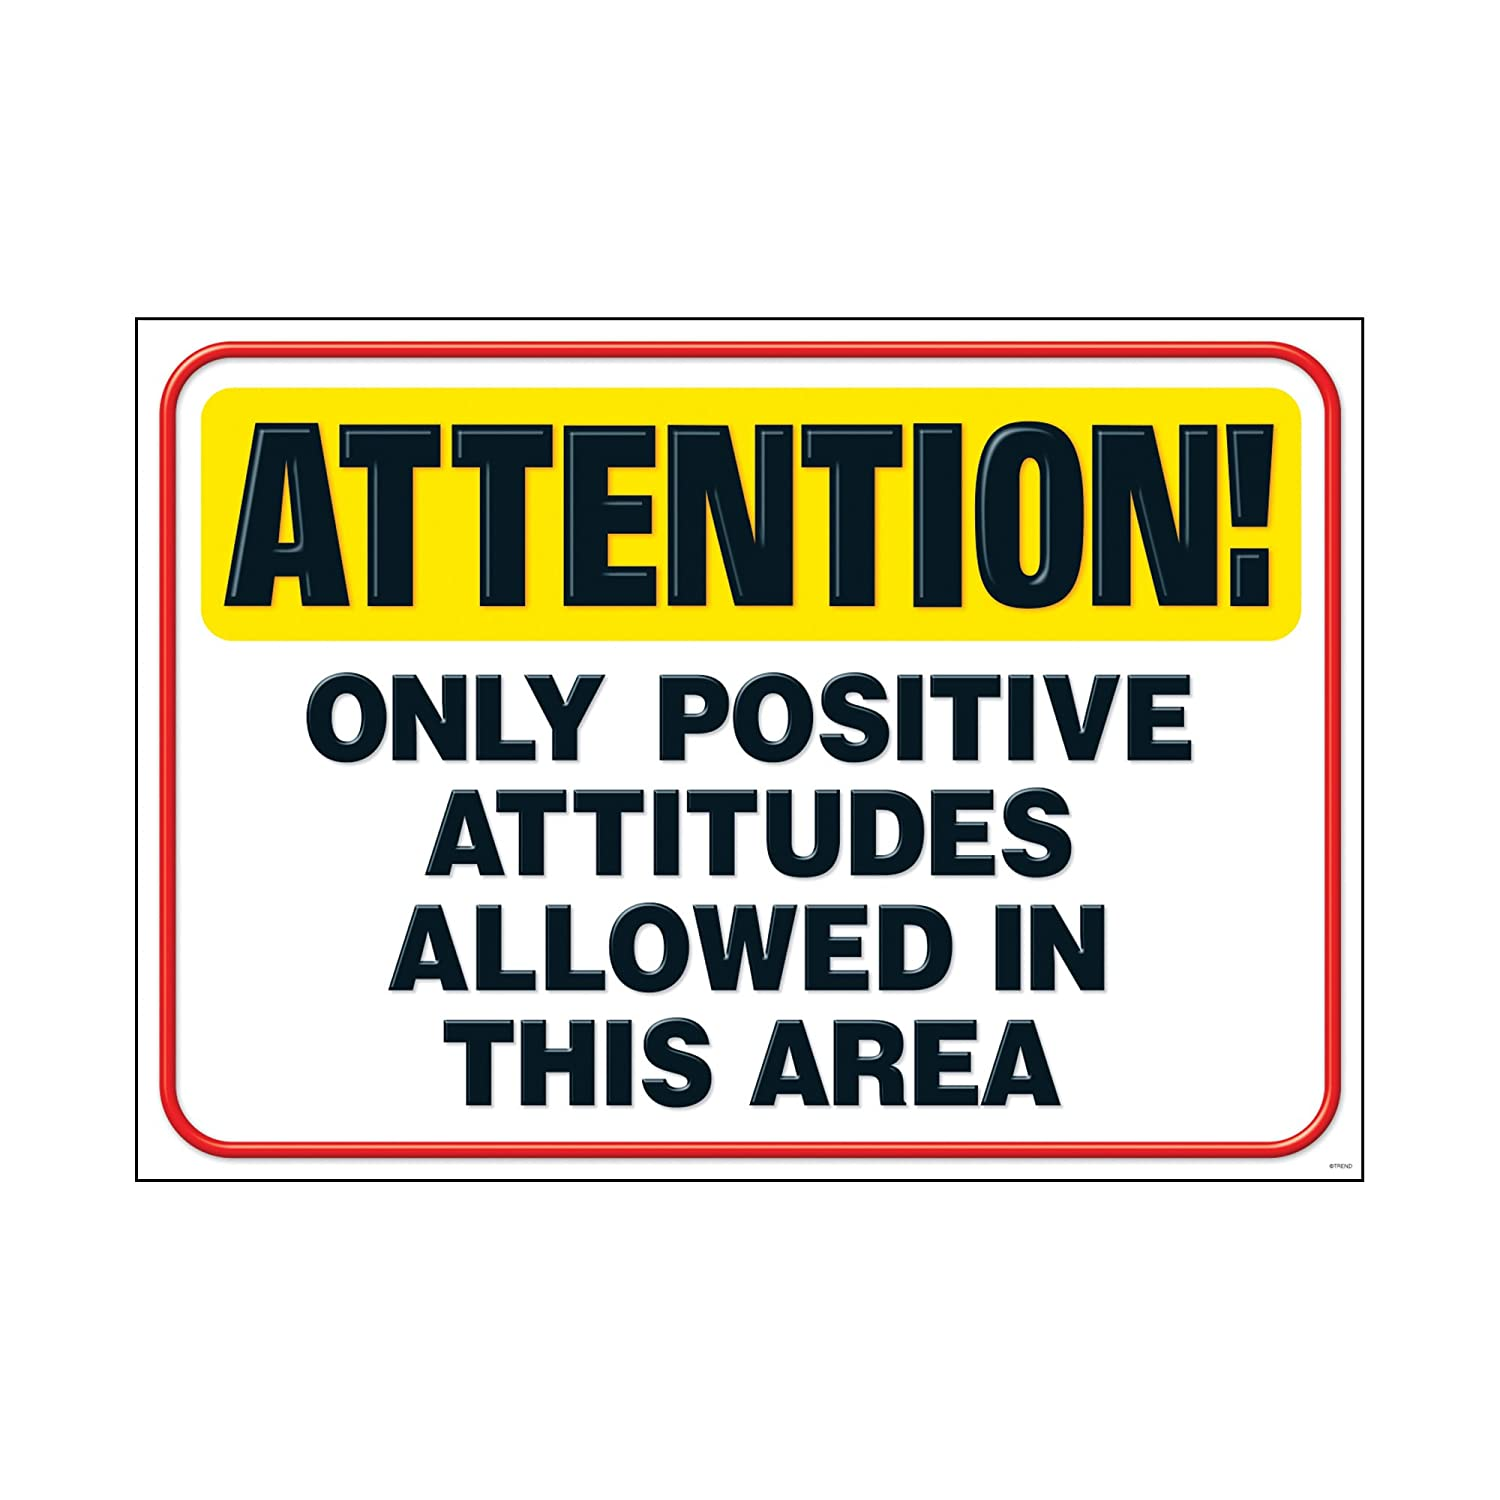 13.375 x 19 13.375 x 19 TREND enterprises Inc T-A67389 Argus Attention Only Positive Poster